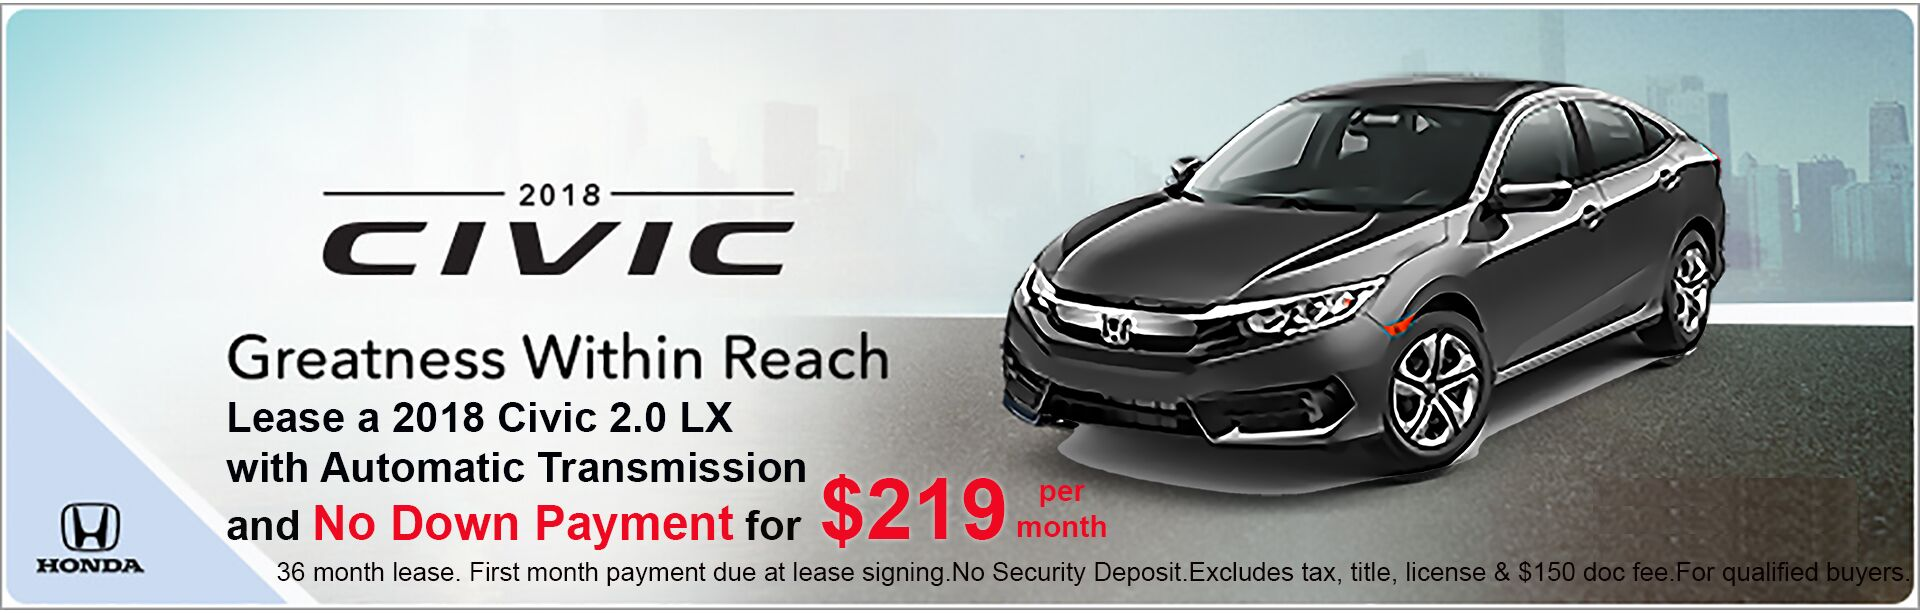 2018 Civic Lease Special